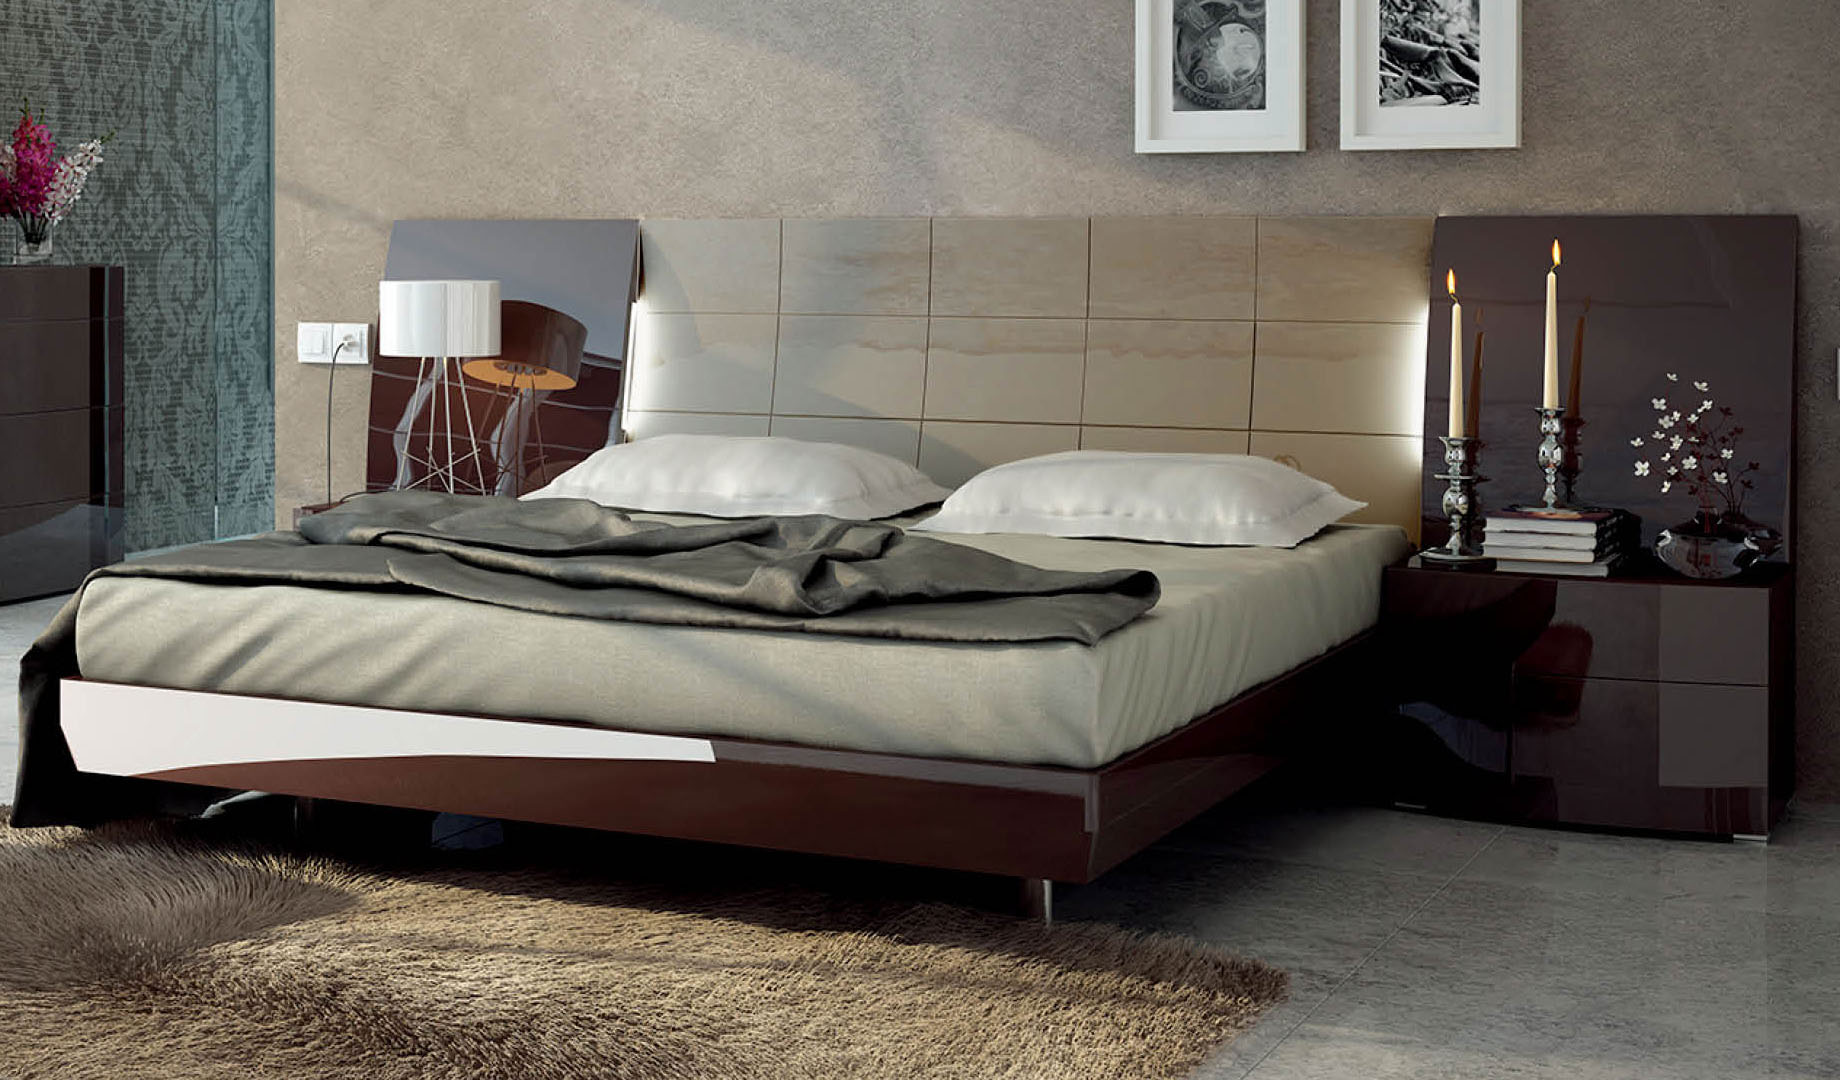 Remarkable Luxury Platform Bed 1840 x 1080 · 299 kB · jpeg